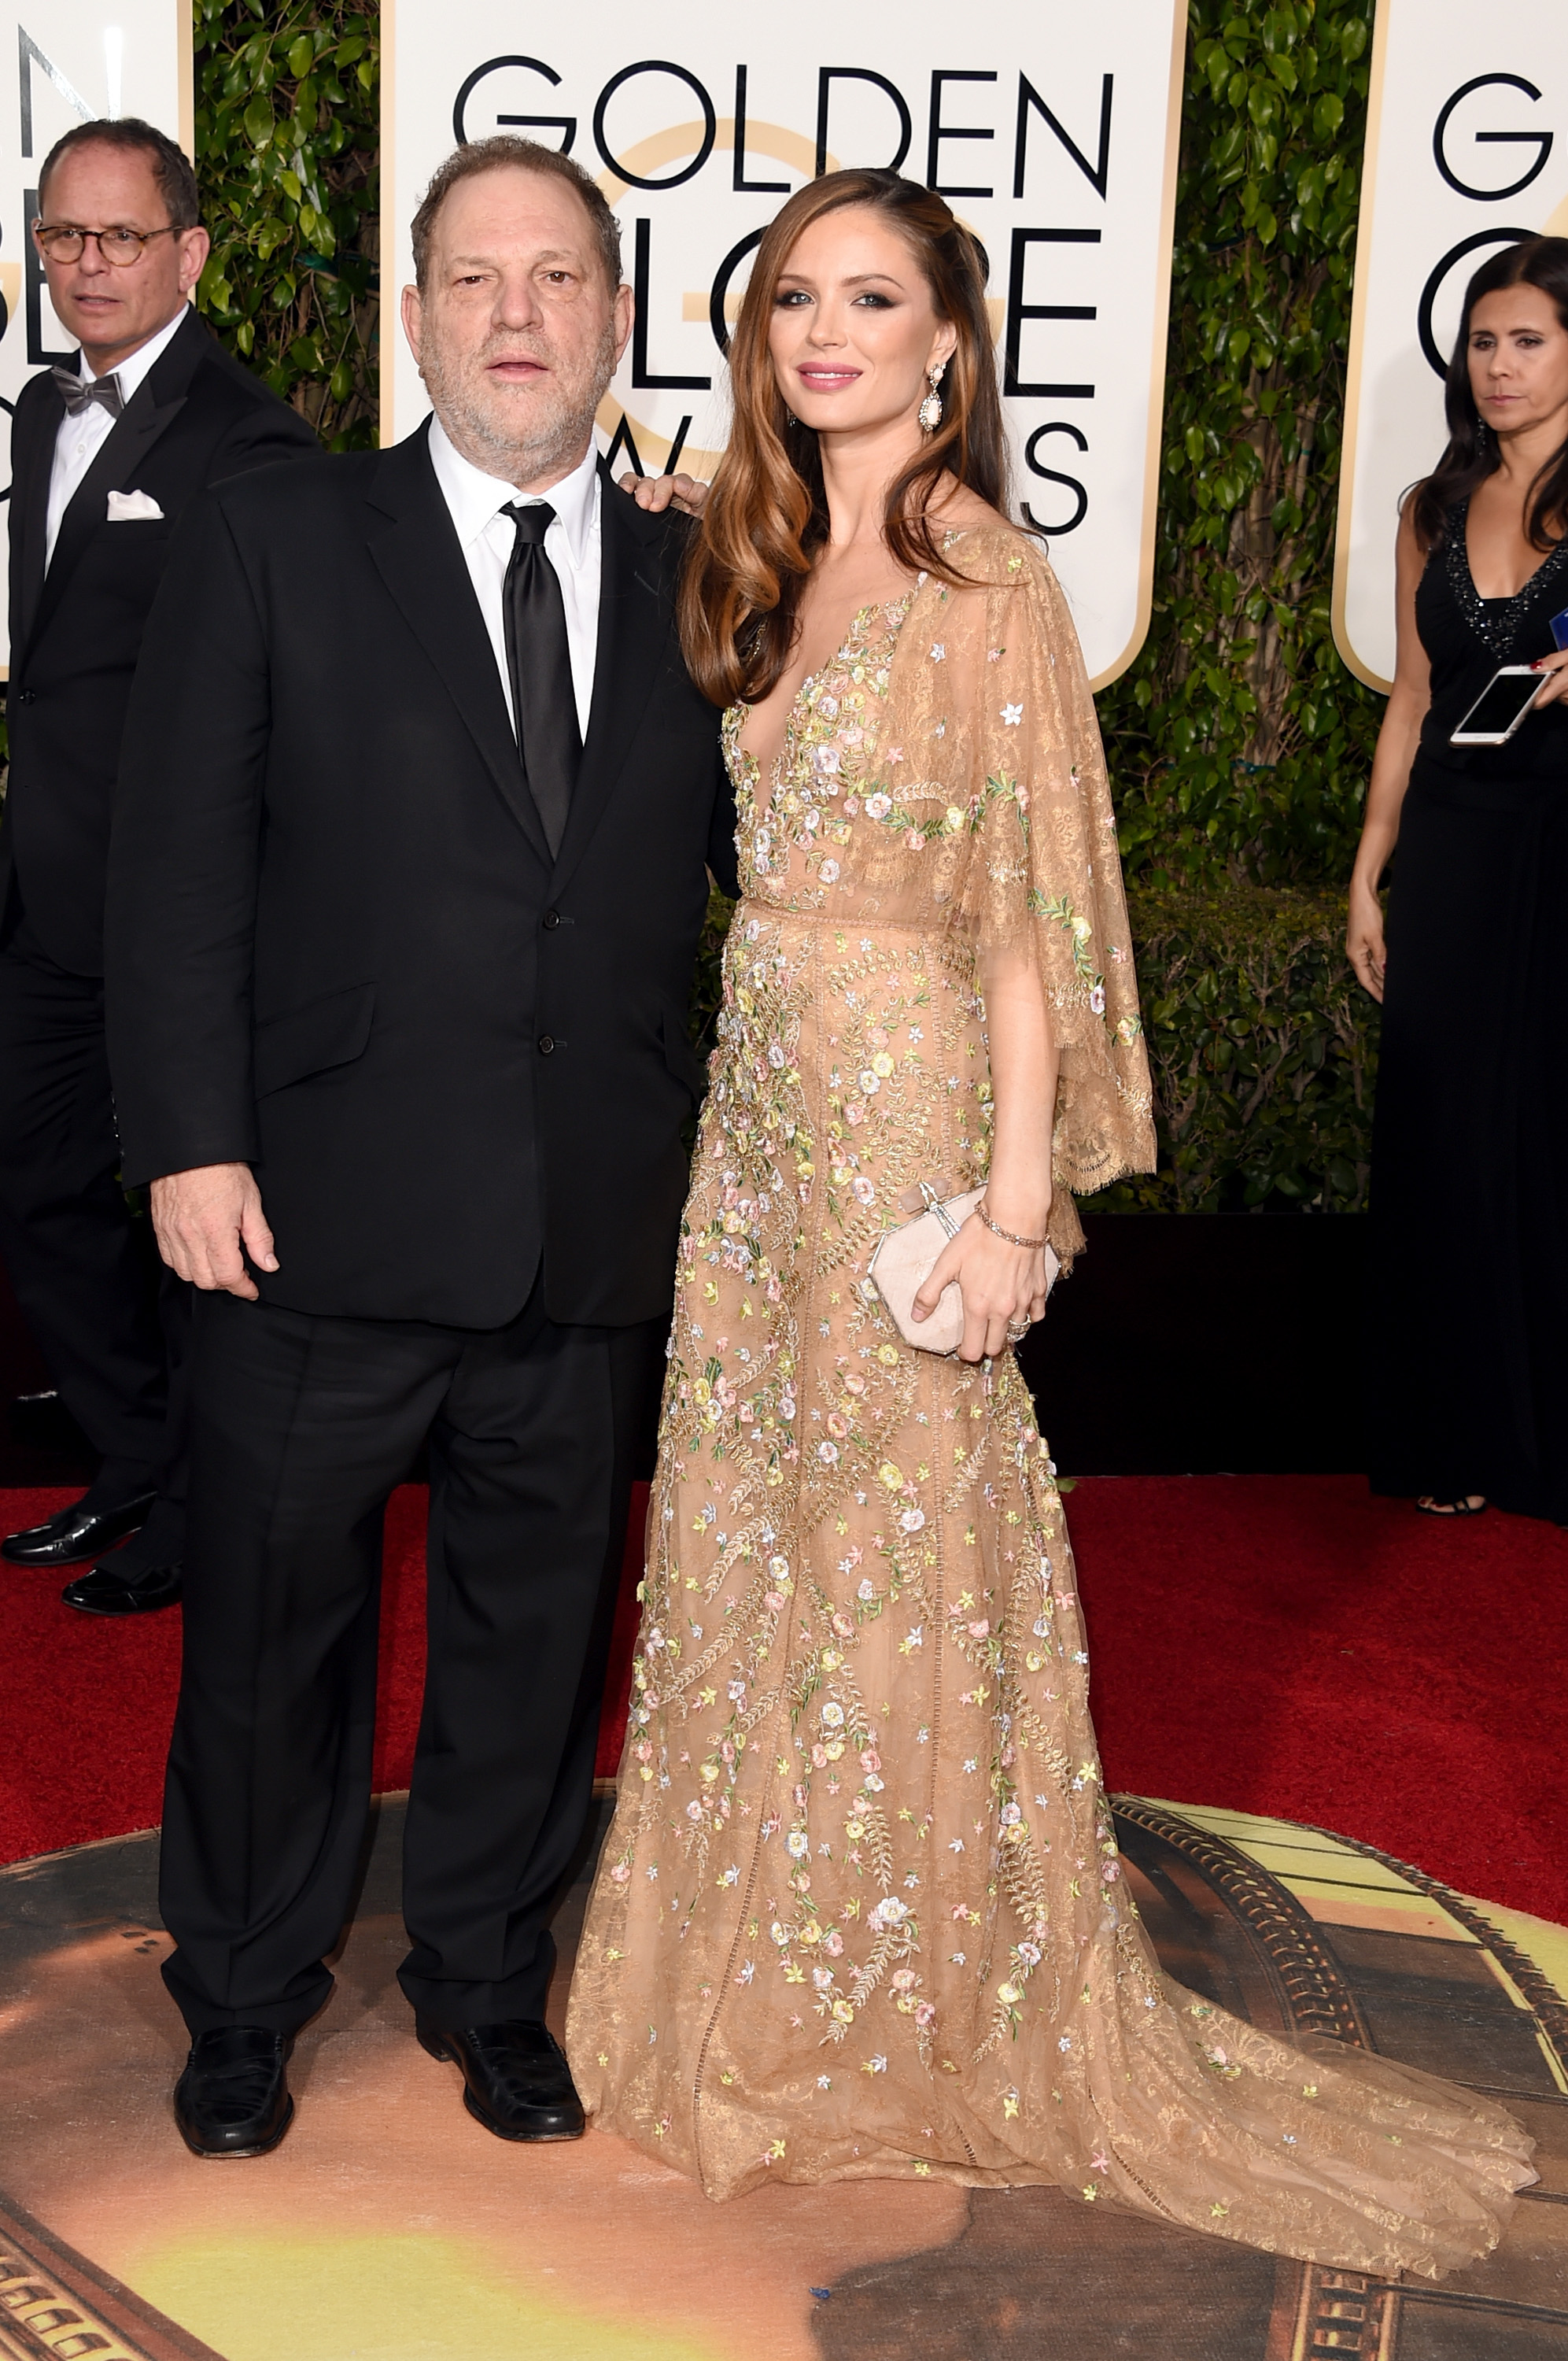 Producer Harvey Weinstein and designer Georgina Chapman attend the 73rd Annual Golden Globe Awards held at the Beverly Hilton Hotel on January 10, 2016 in Beverly Hills, California.